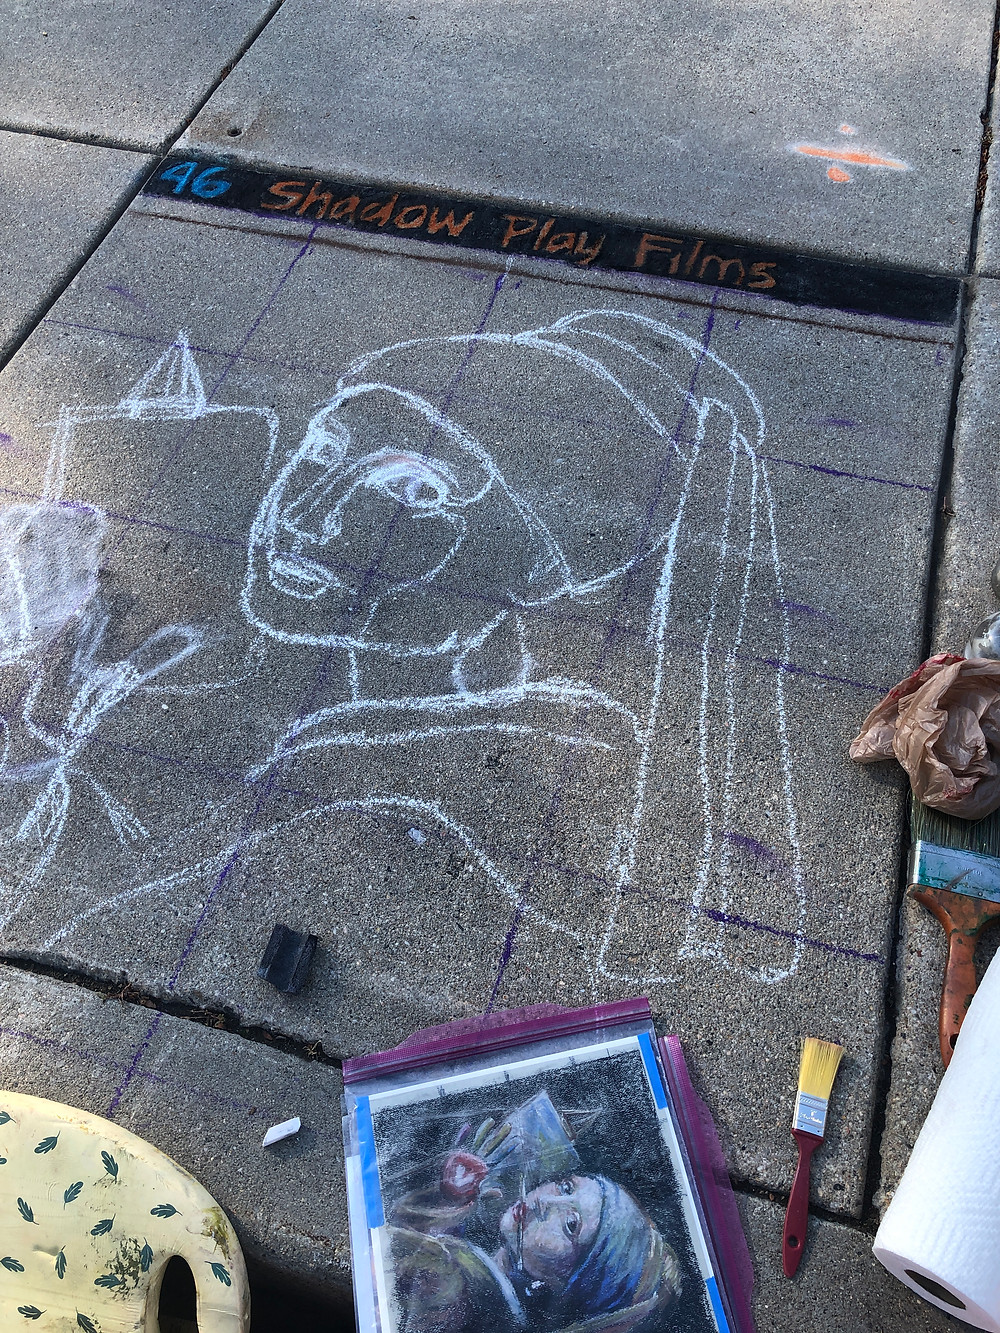 A chalk drawing of Vermeer's Girl with a Pearl Earring on sidewalk